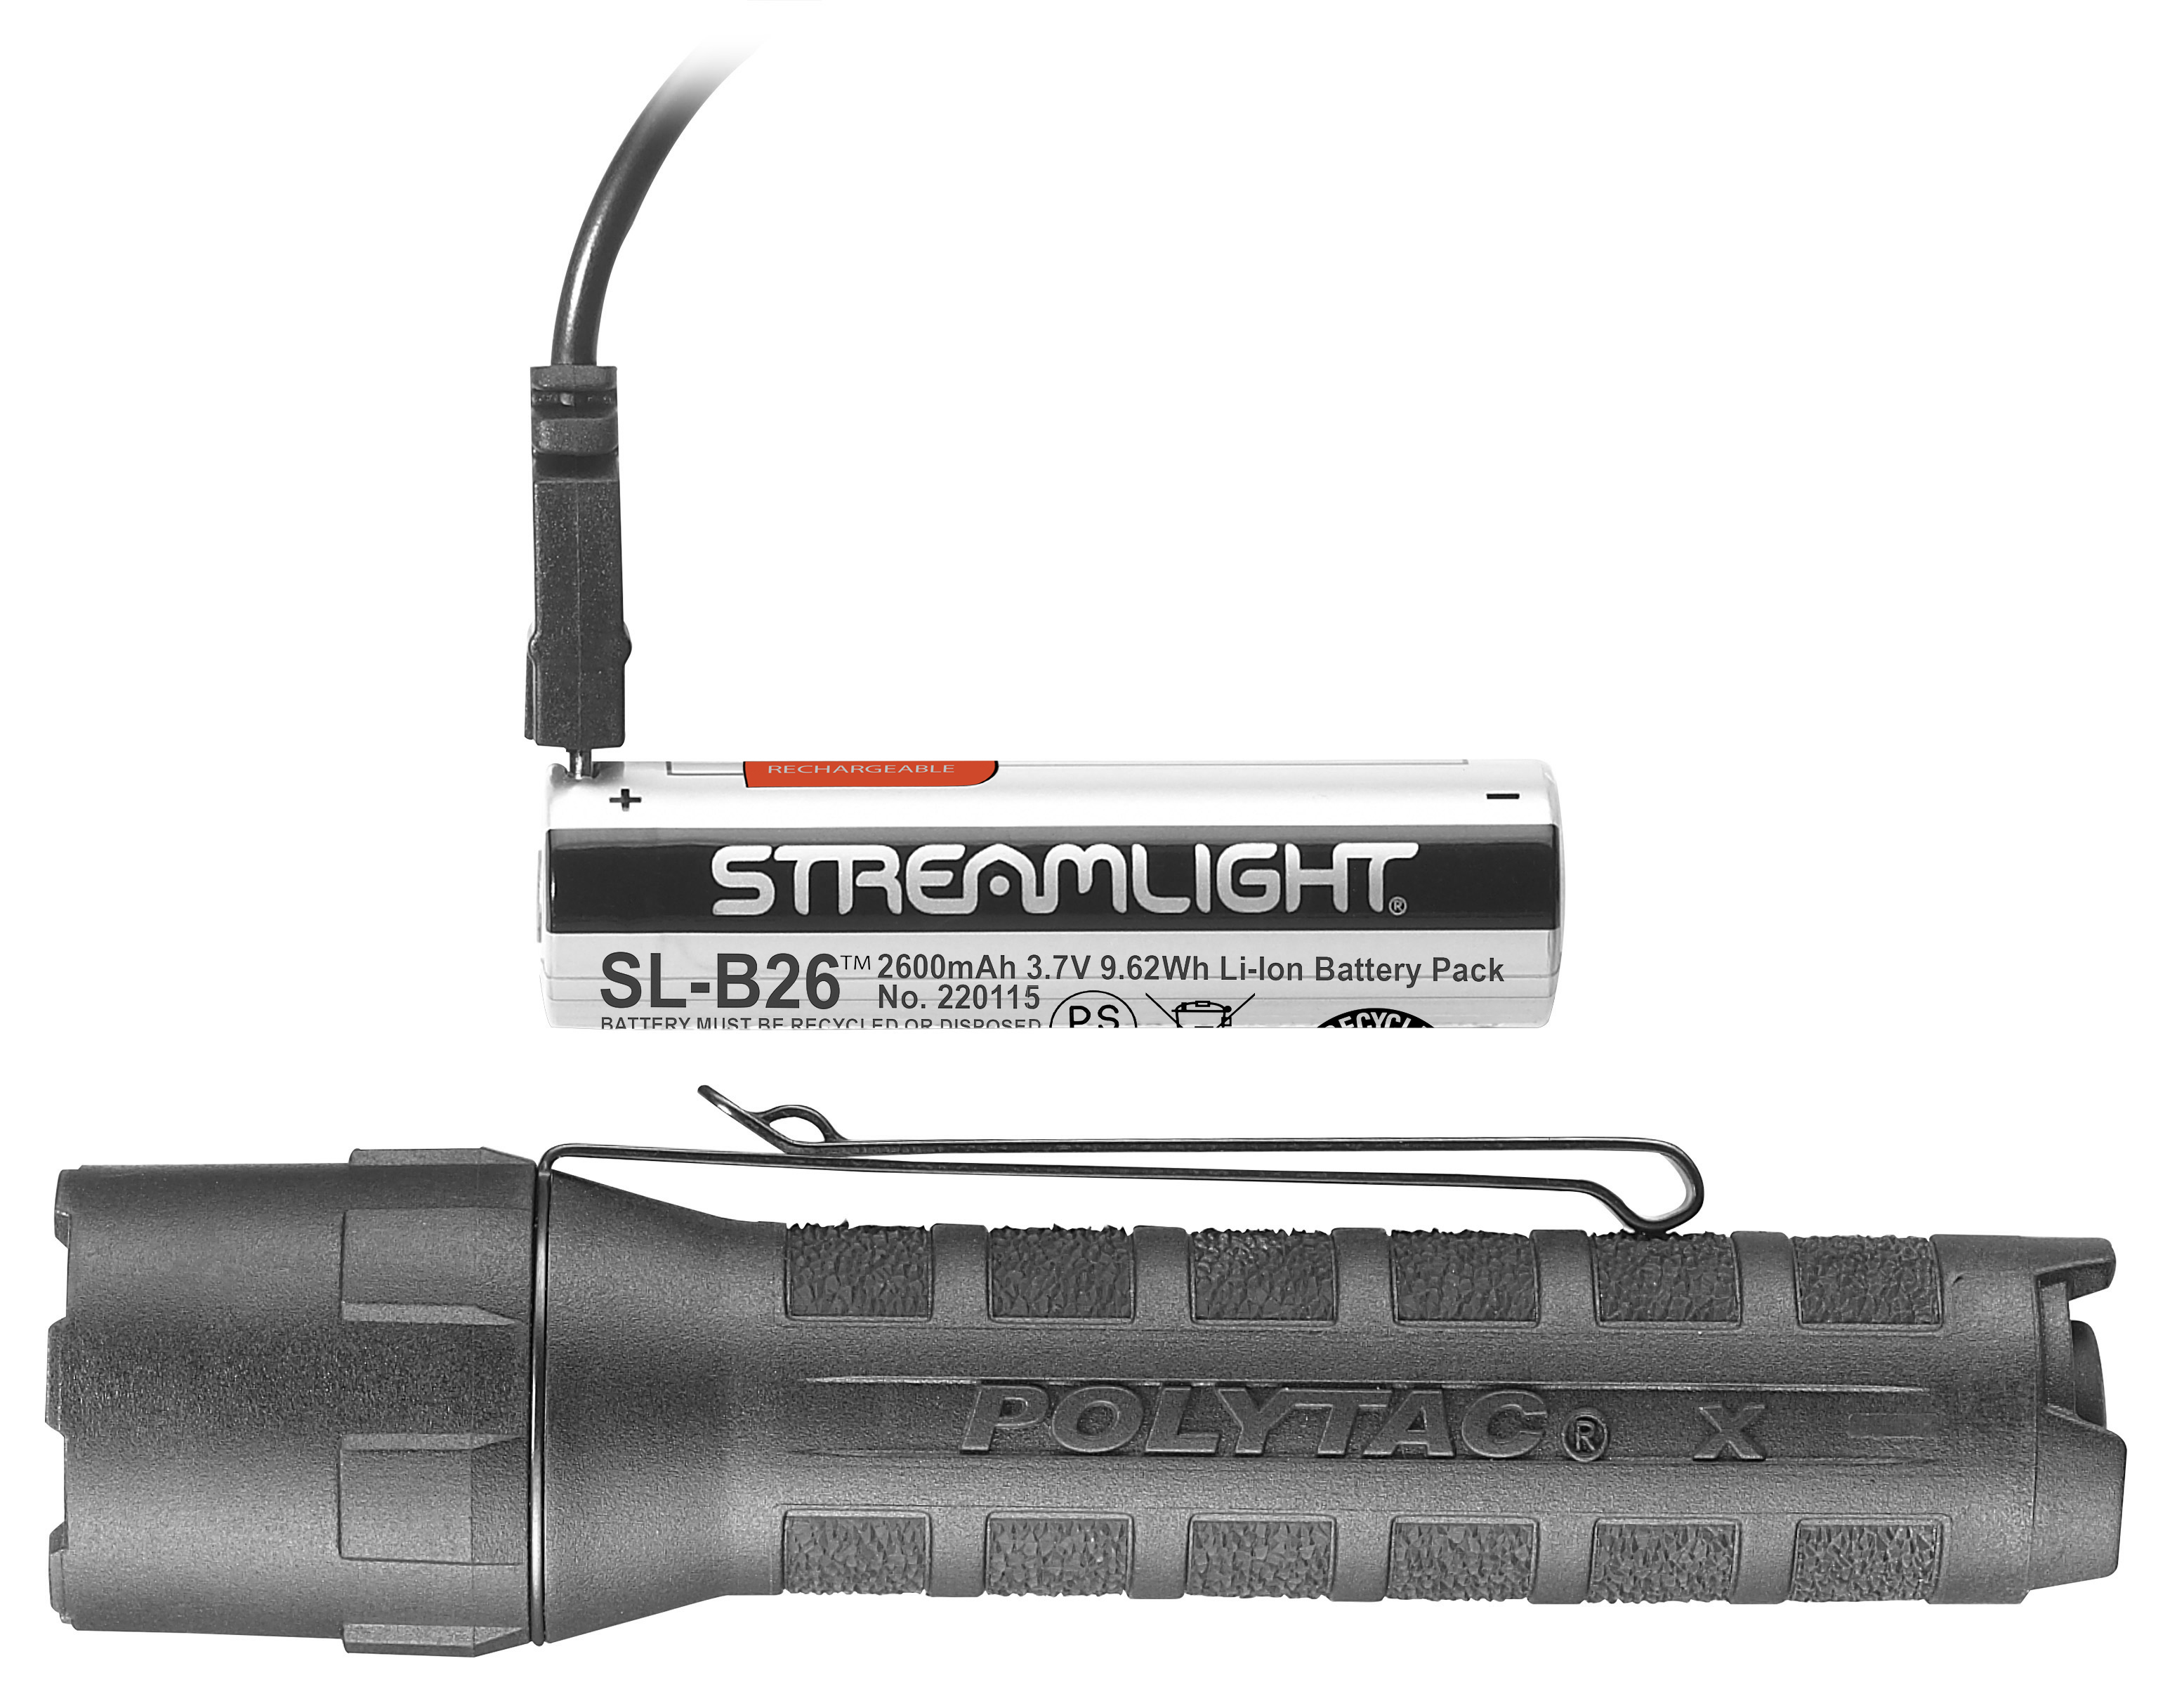 POLYTAC® X USB/POLYTAC® X FLASHLIGHT